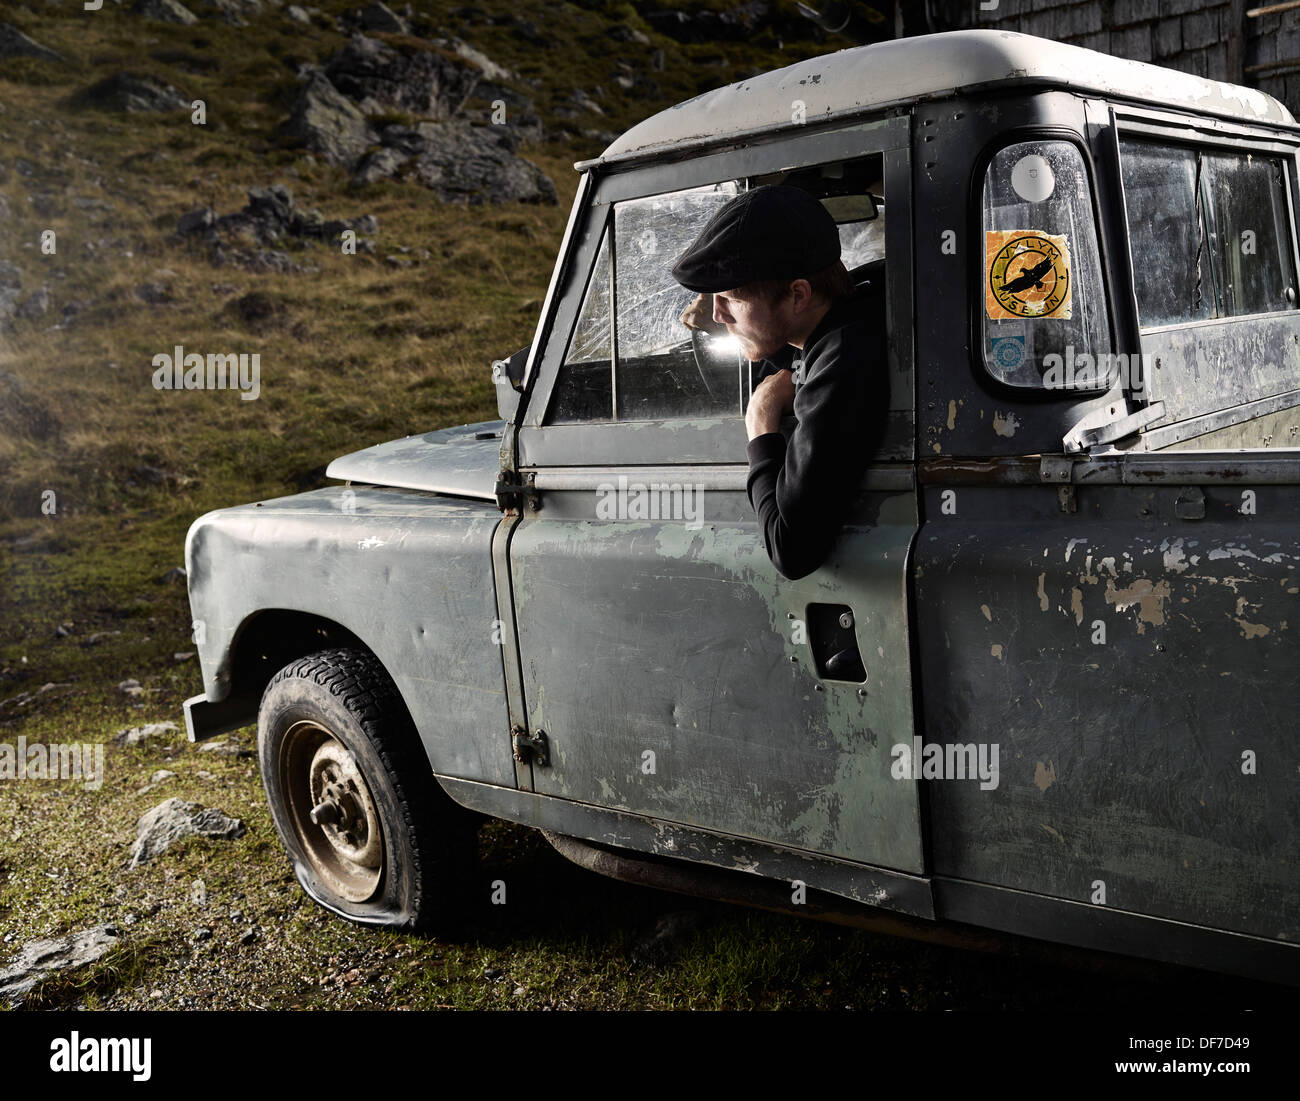 Man with a hat sitting in the driver's seat of an old car noticing a flat front left tyre, Inneralpbach, Tyrol, Austria - Stock Image